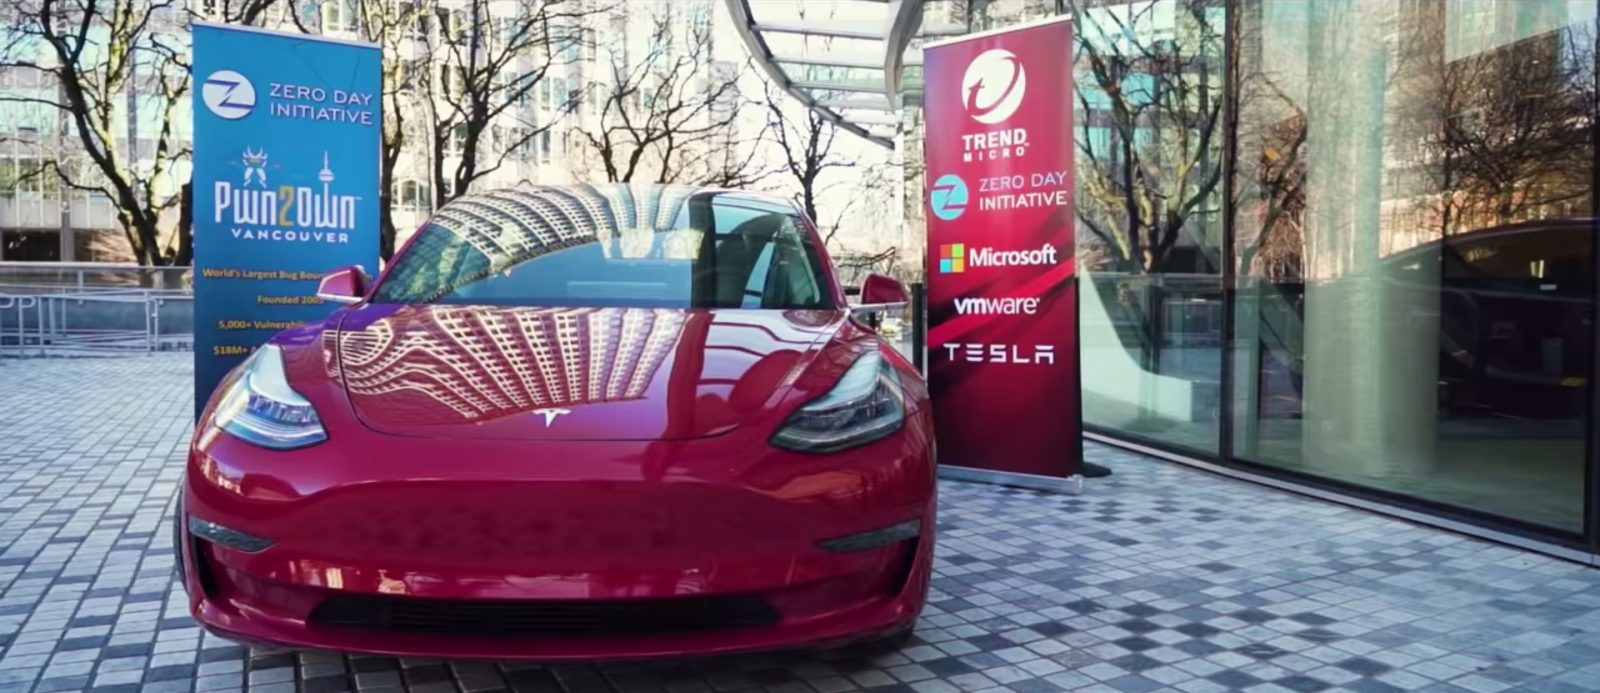 Hackers crack Tesla Model 3 in competition, Tesla gives them the car